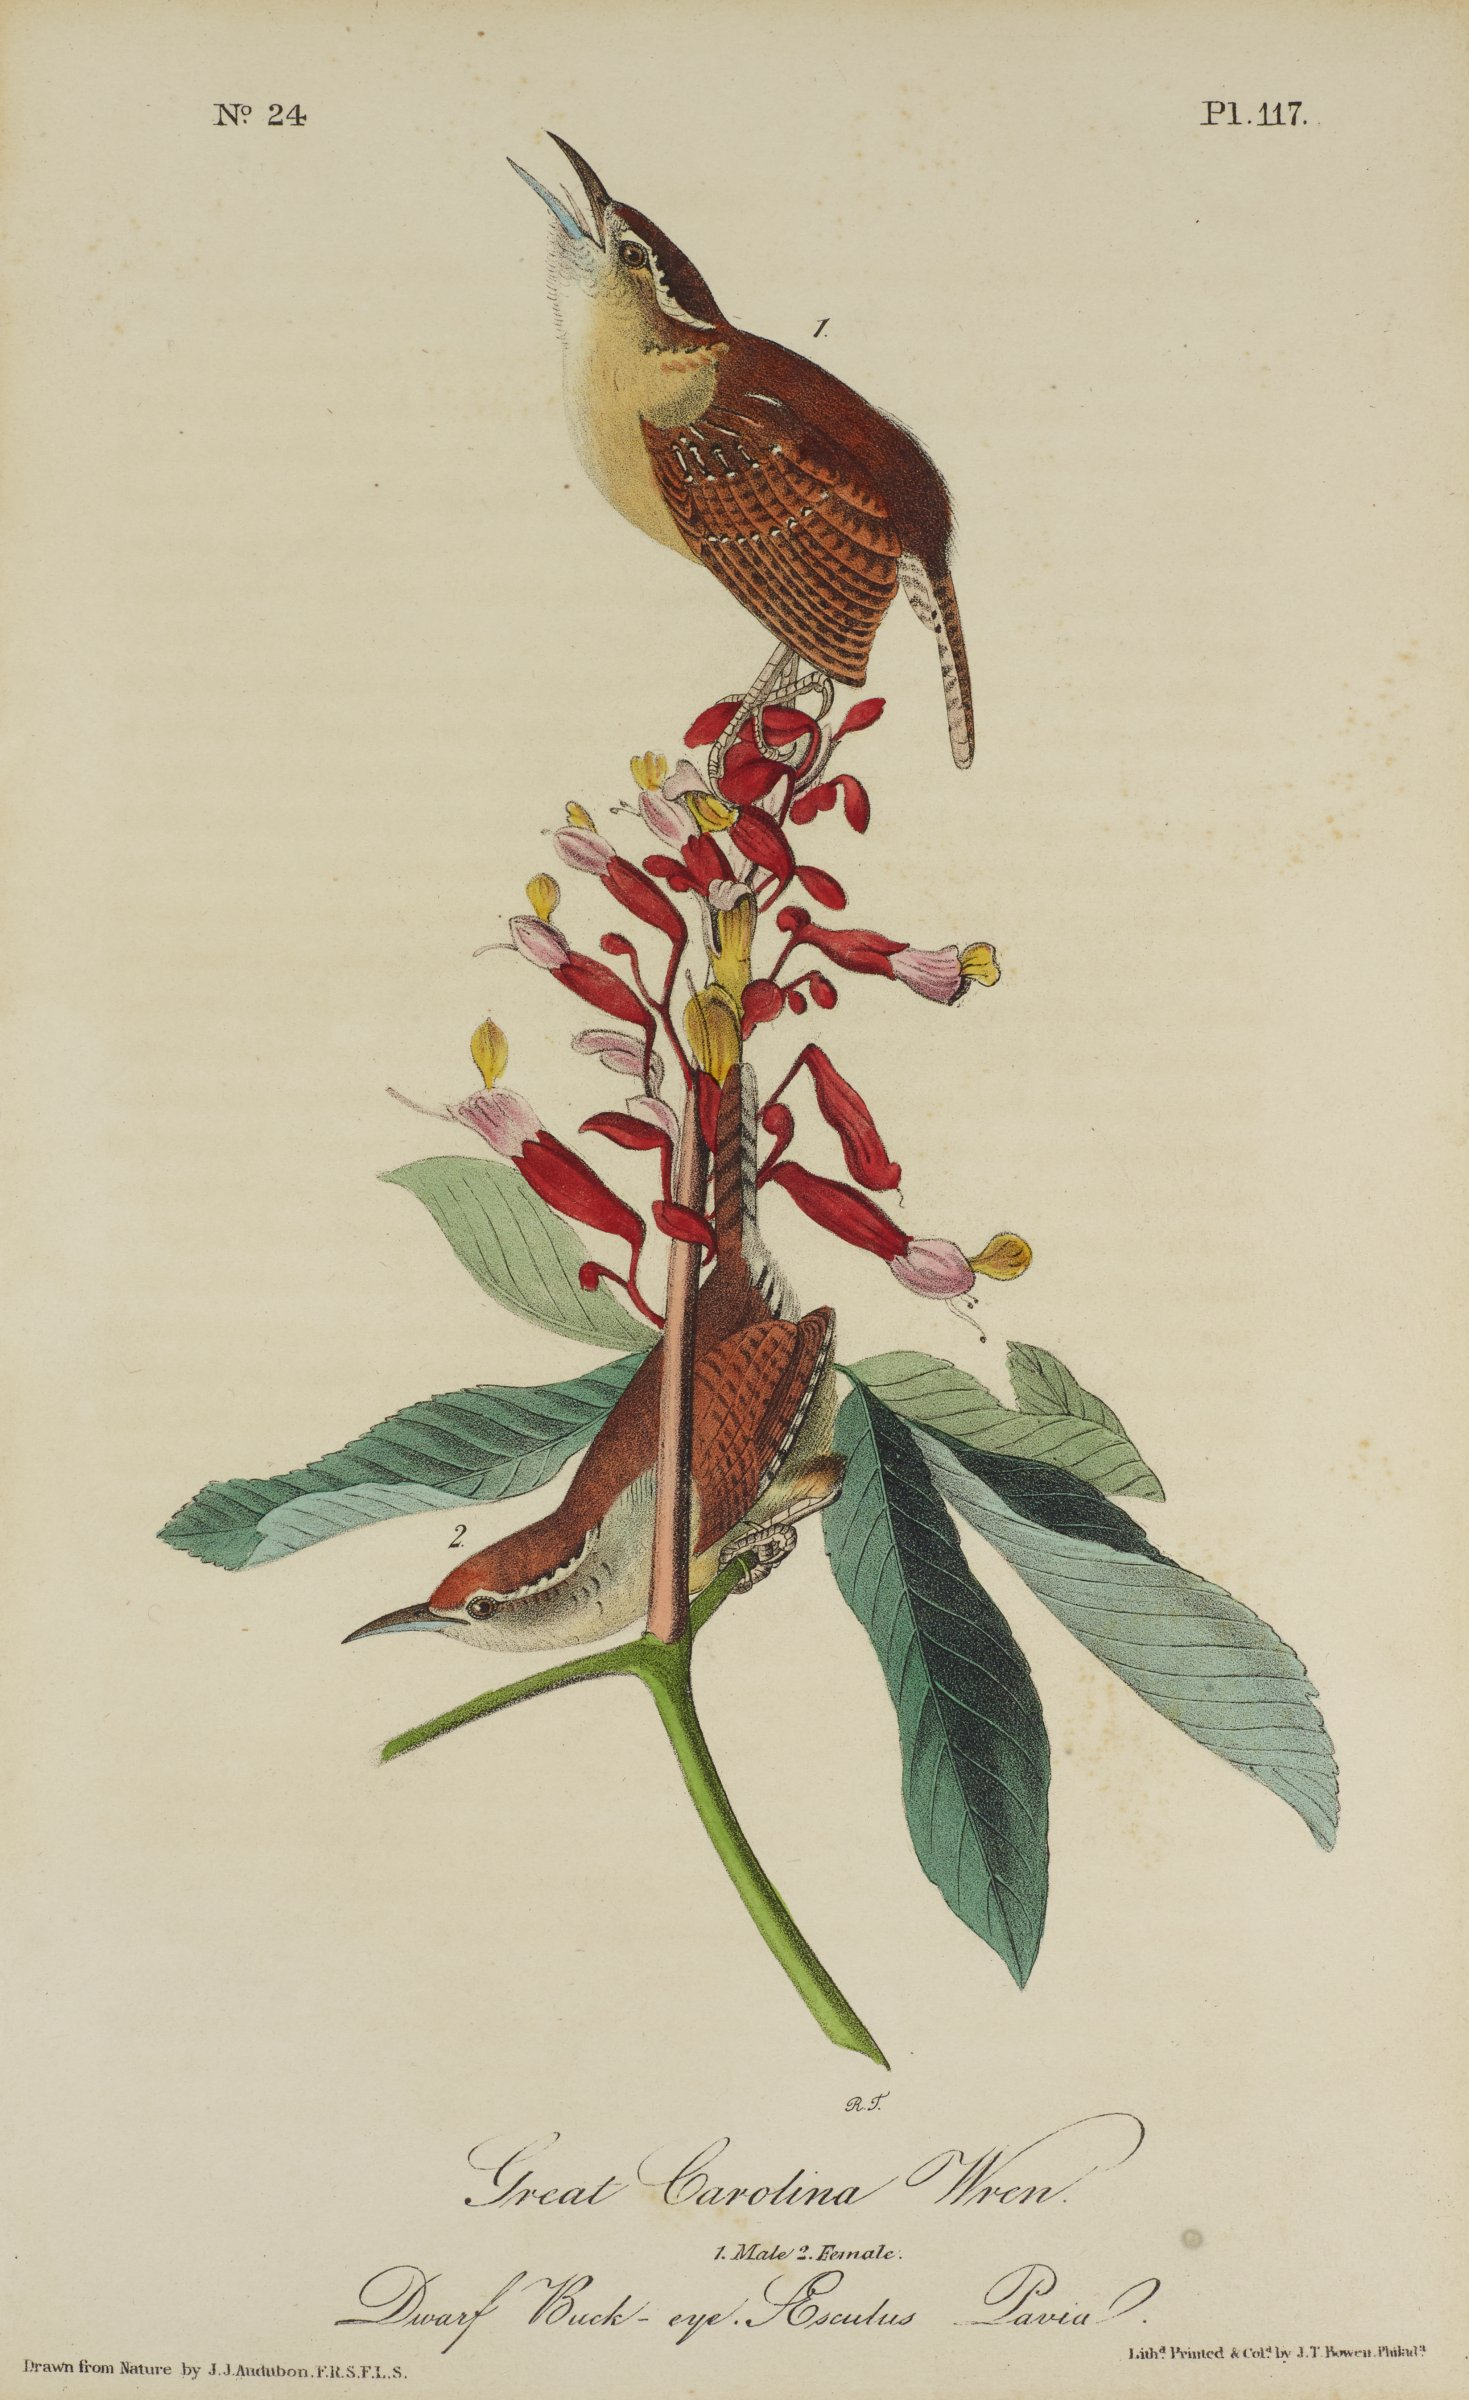 Two wrens are depicted with brown feathers accented by black and white feathers. The lower wren stands on a thin green stem beneath a flowering pink and red plant. The upper bird stands on top of this plant.